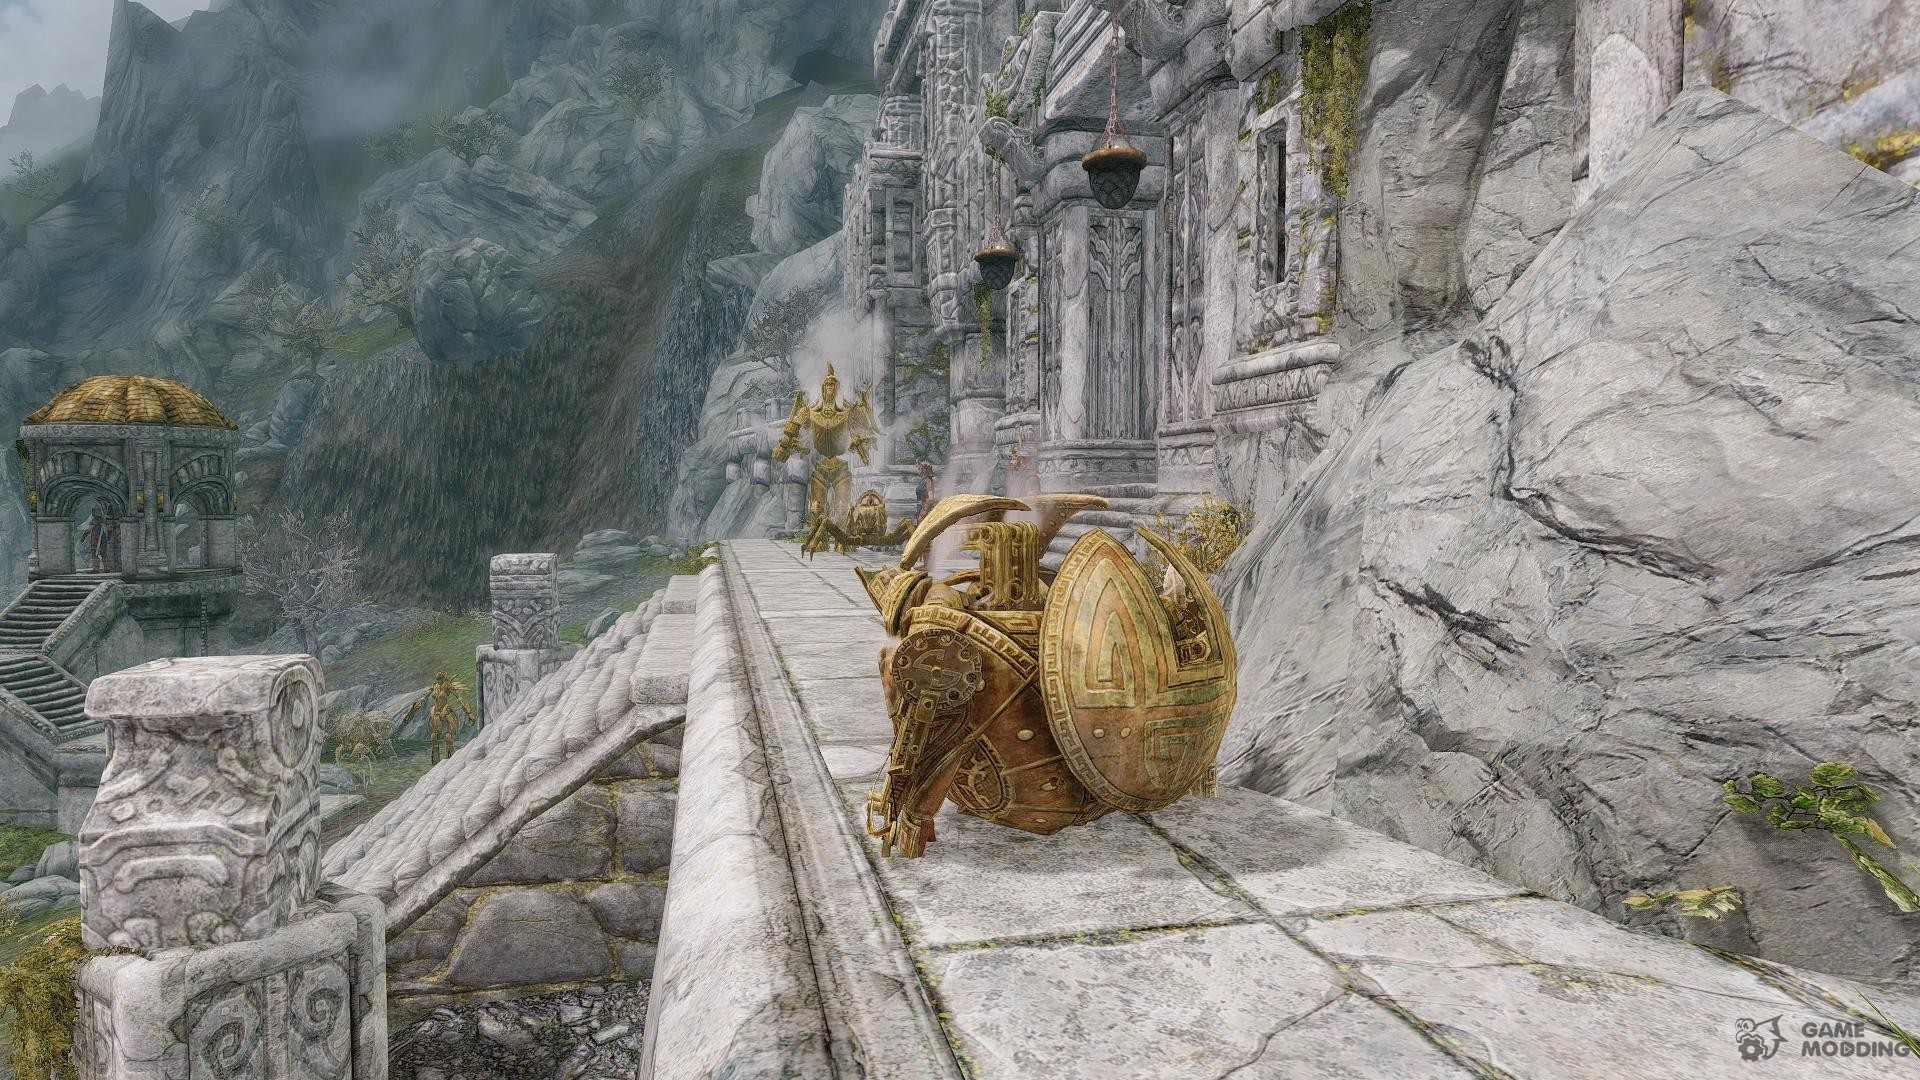 Summon Dwemer Mechanicals - Mounts and Followers for TES V